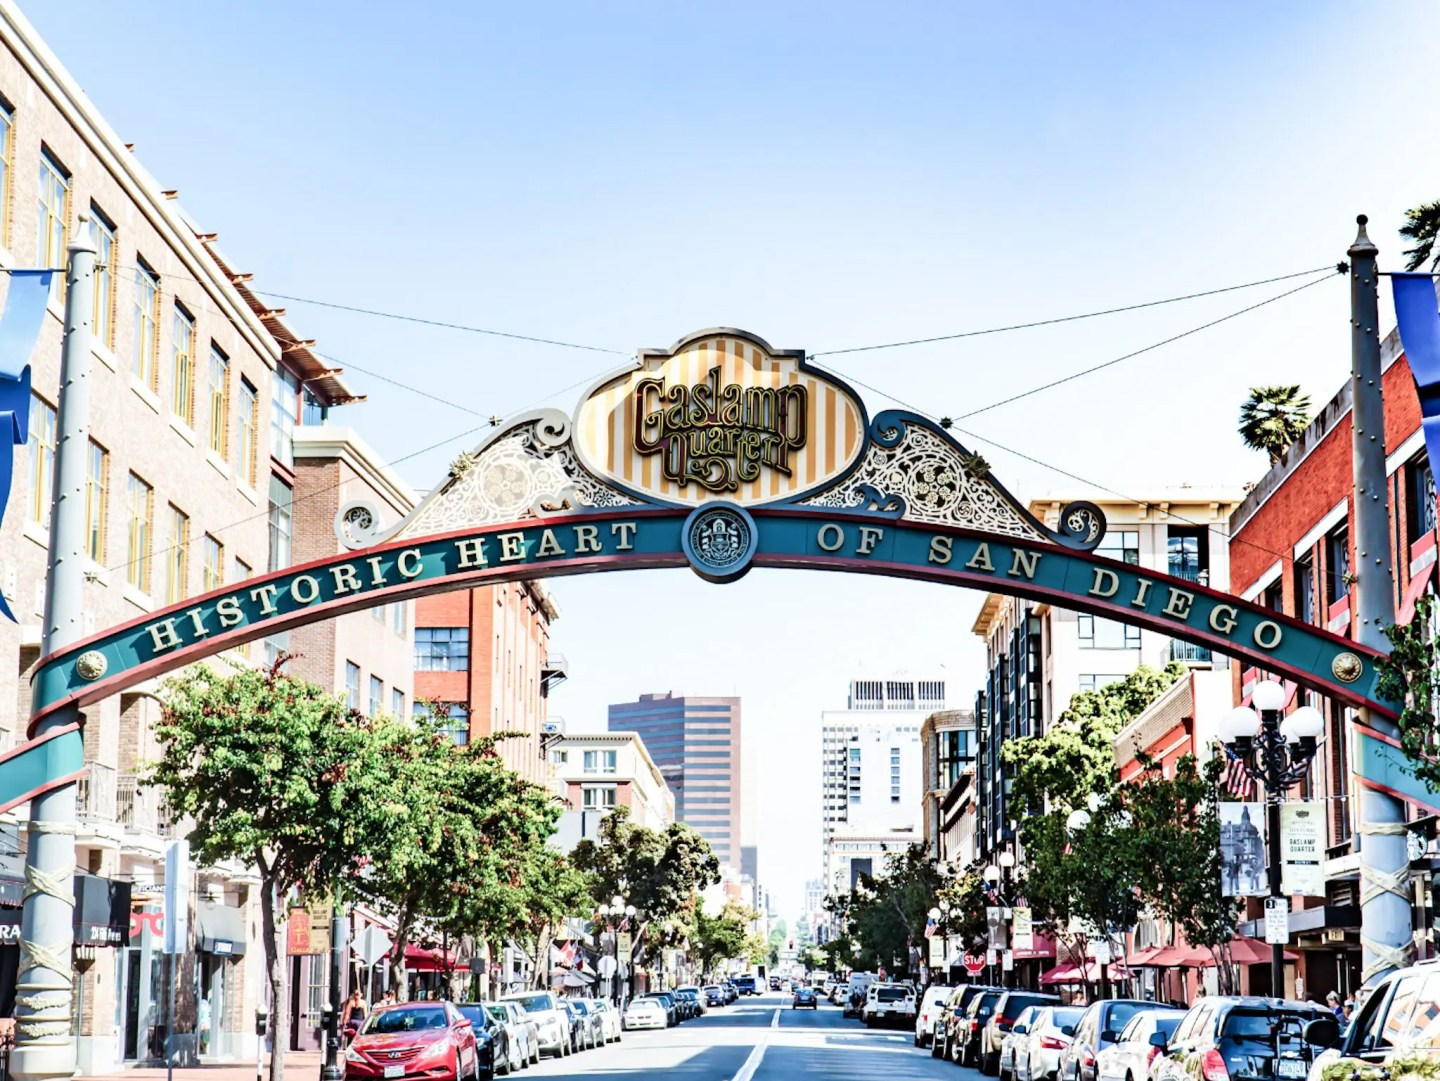 Your road trip to southern California should not end without a night im San Diego's Gaslamp Quarter.